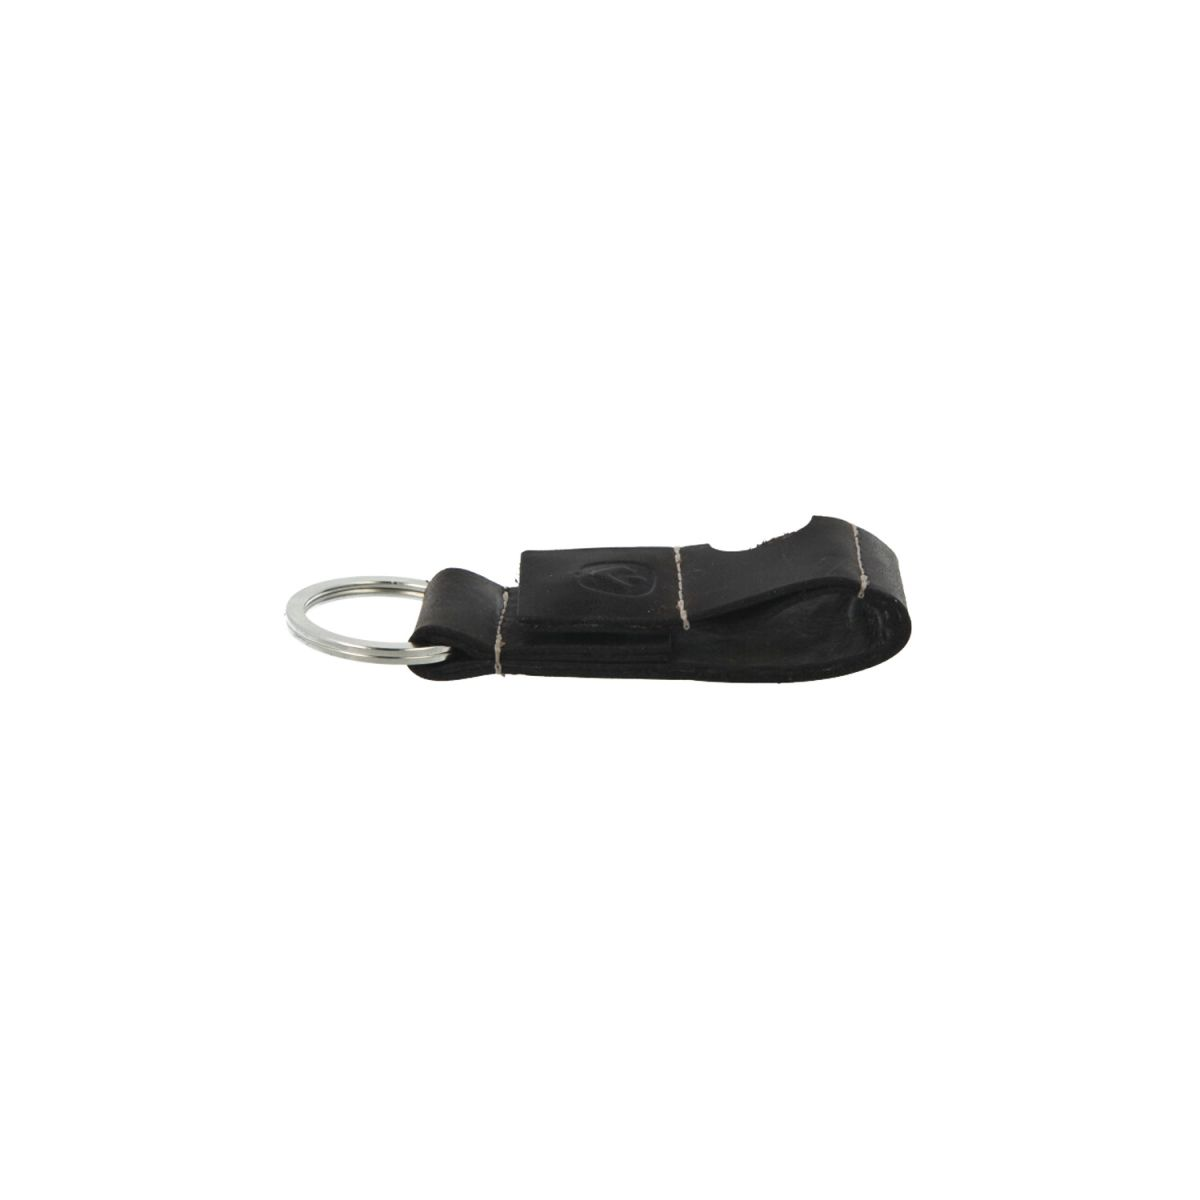 key chain leather black coin space